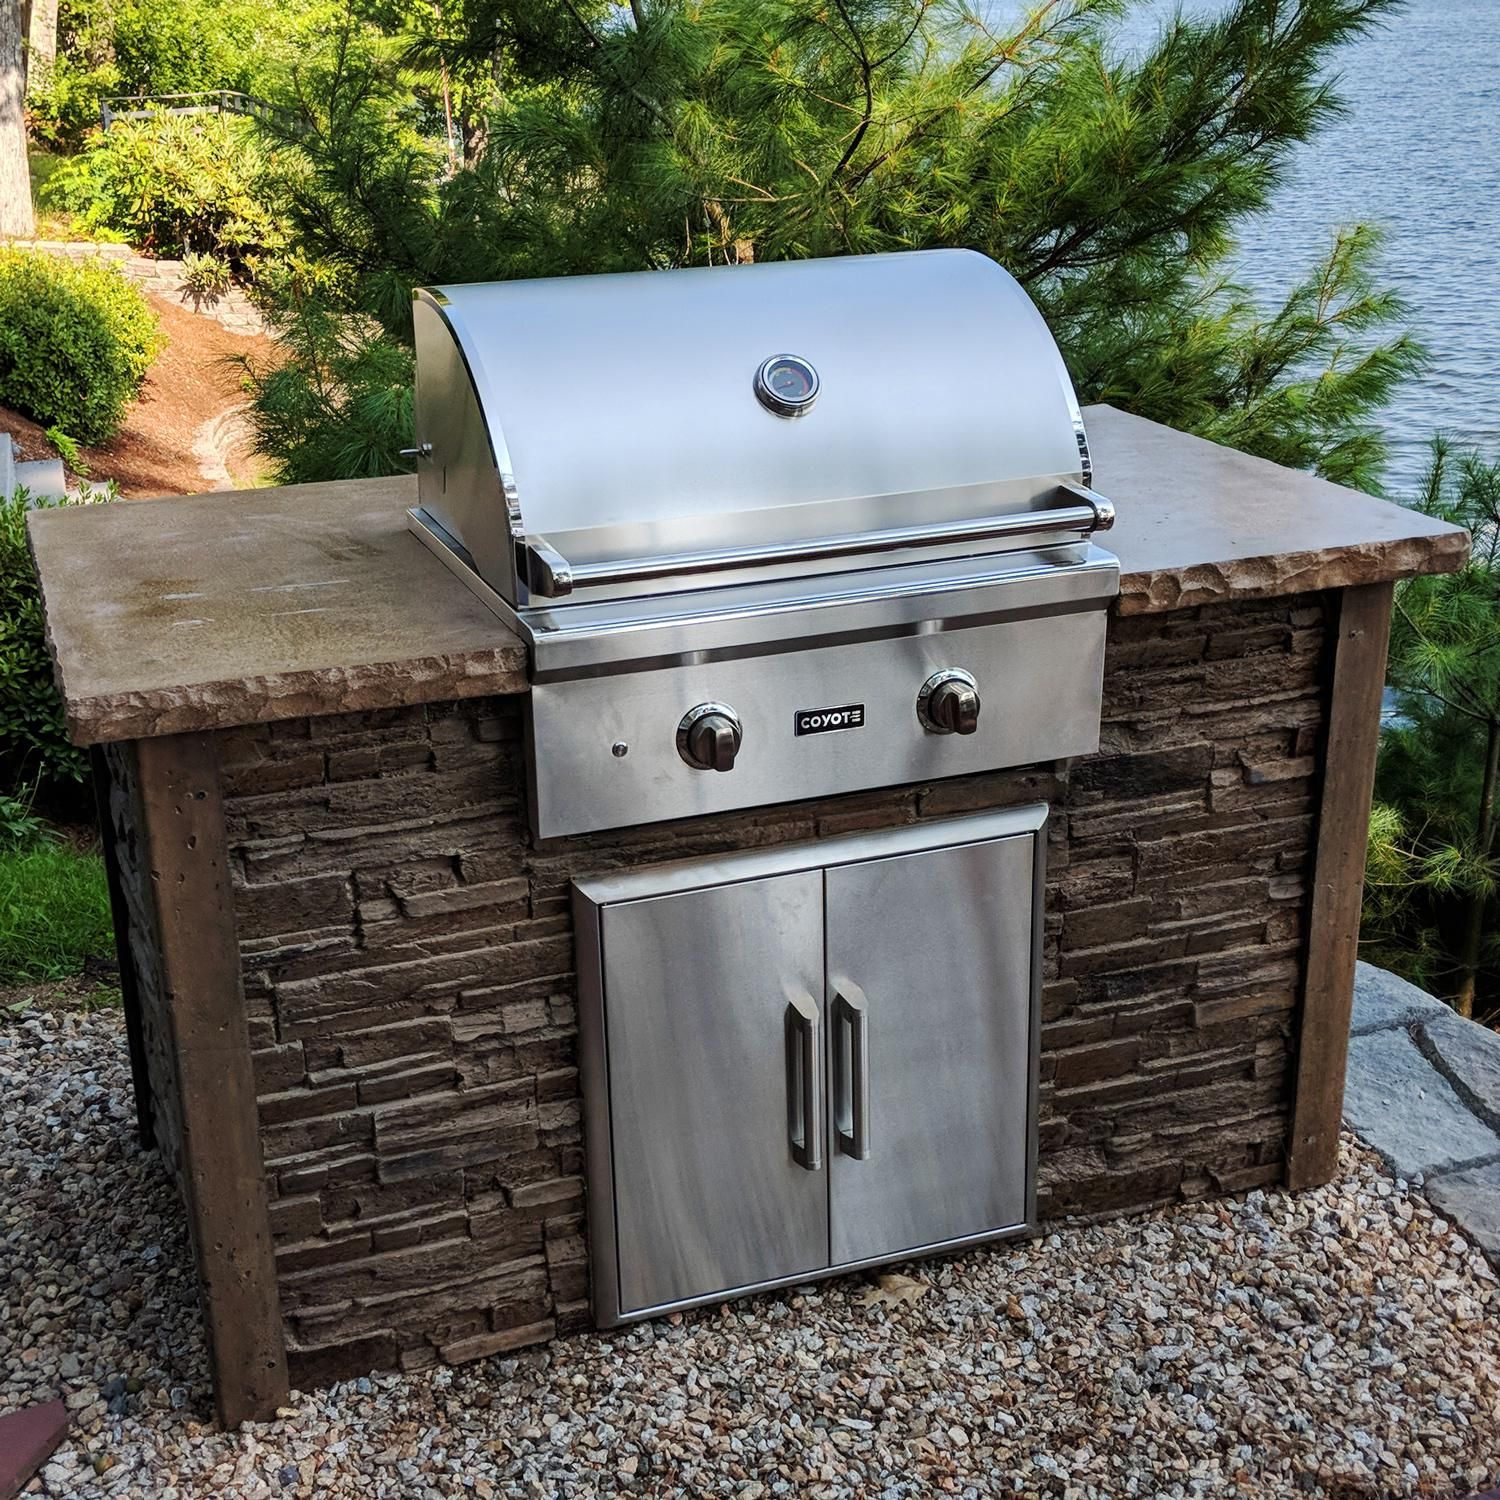 Coyote Built In Grill With Side Burner Built In Grill Kitchen Design Outdoor Kitchen Design